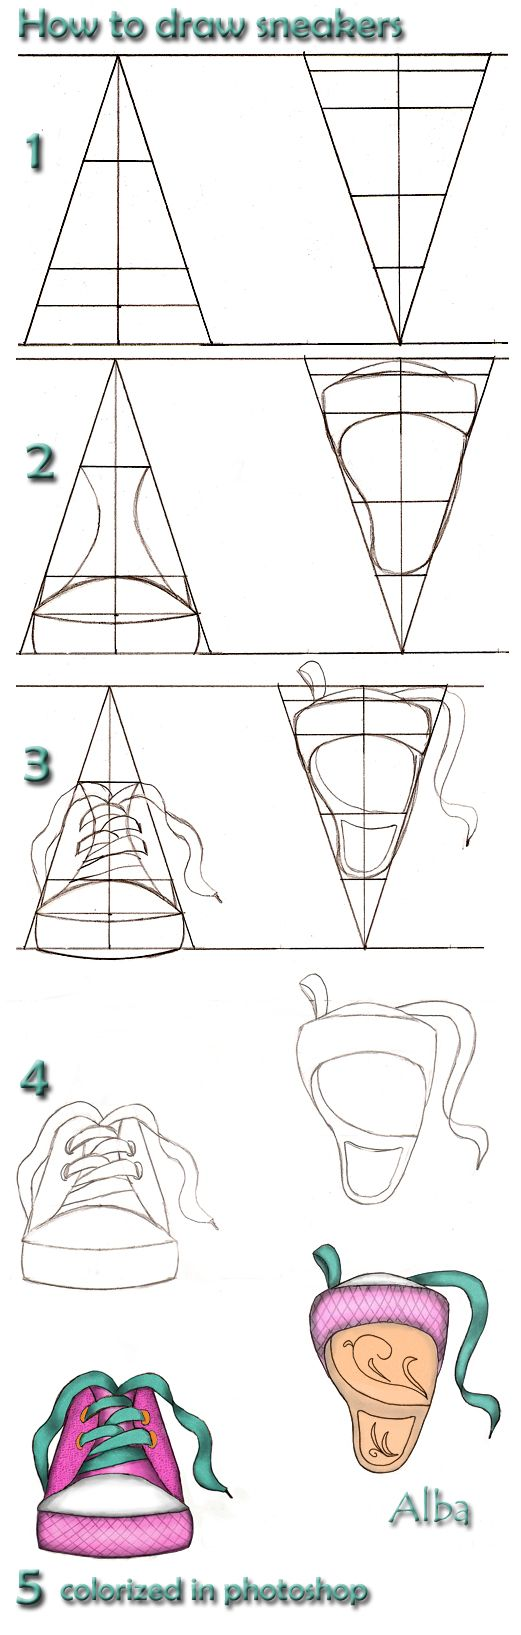 how to draw snakers